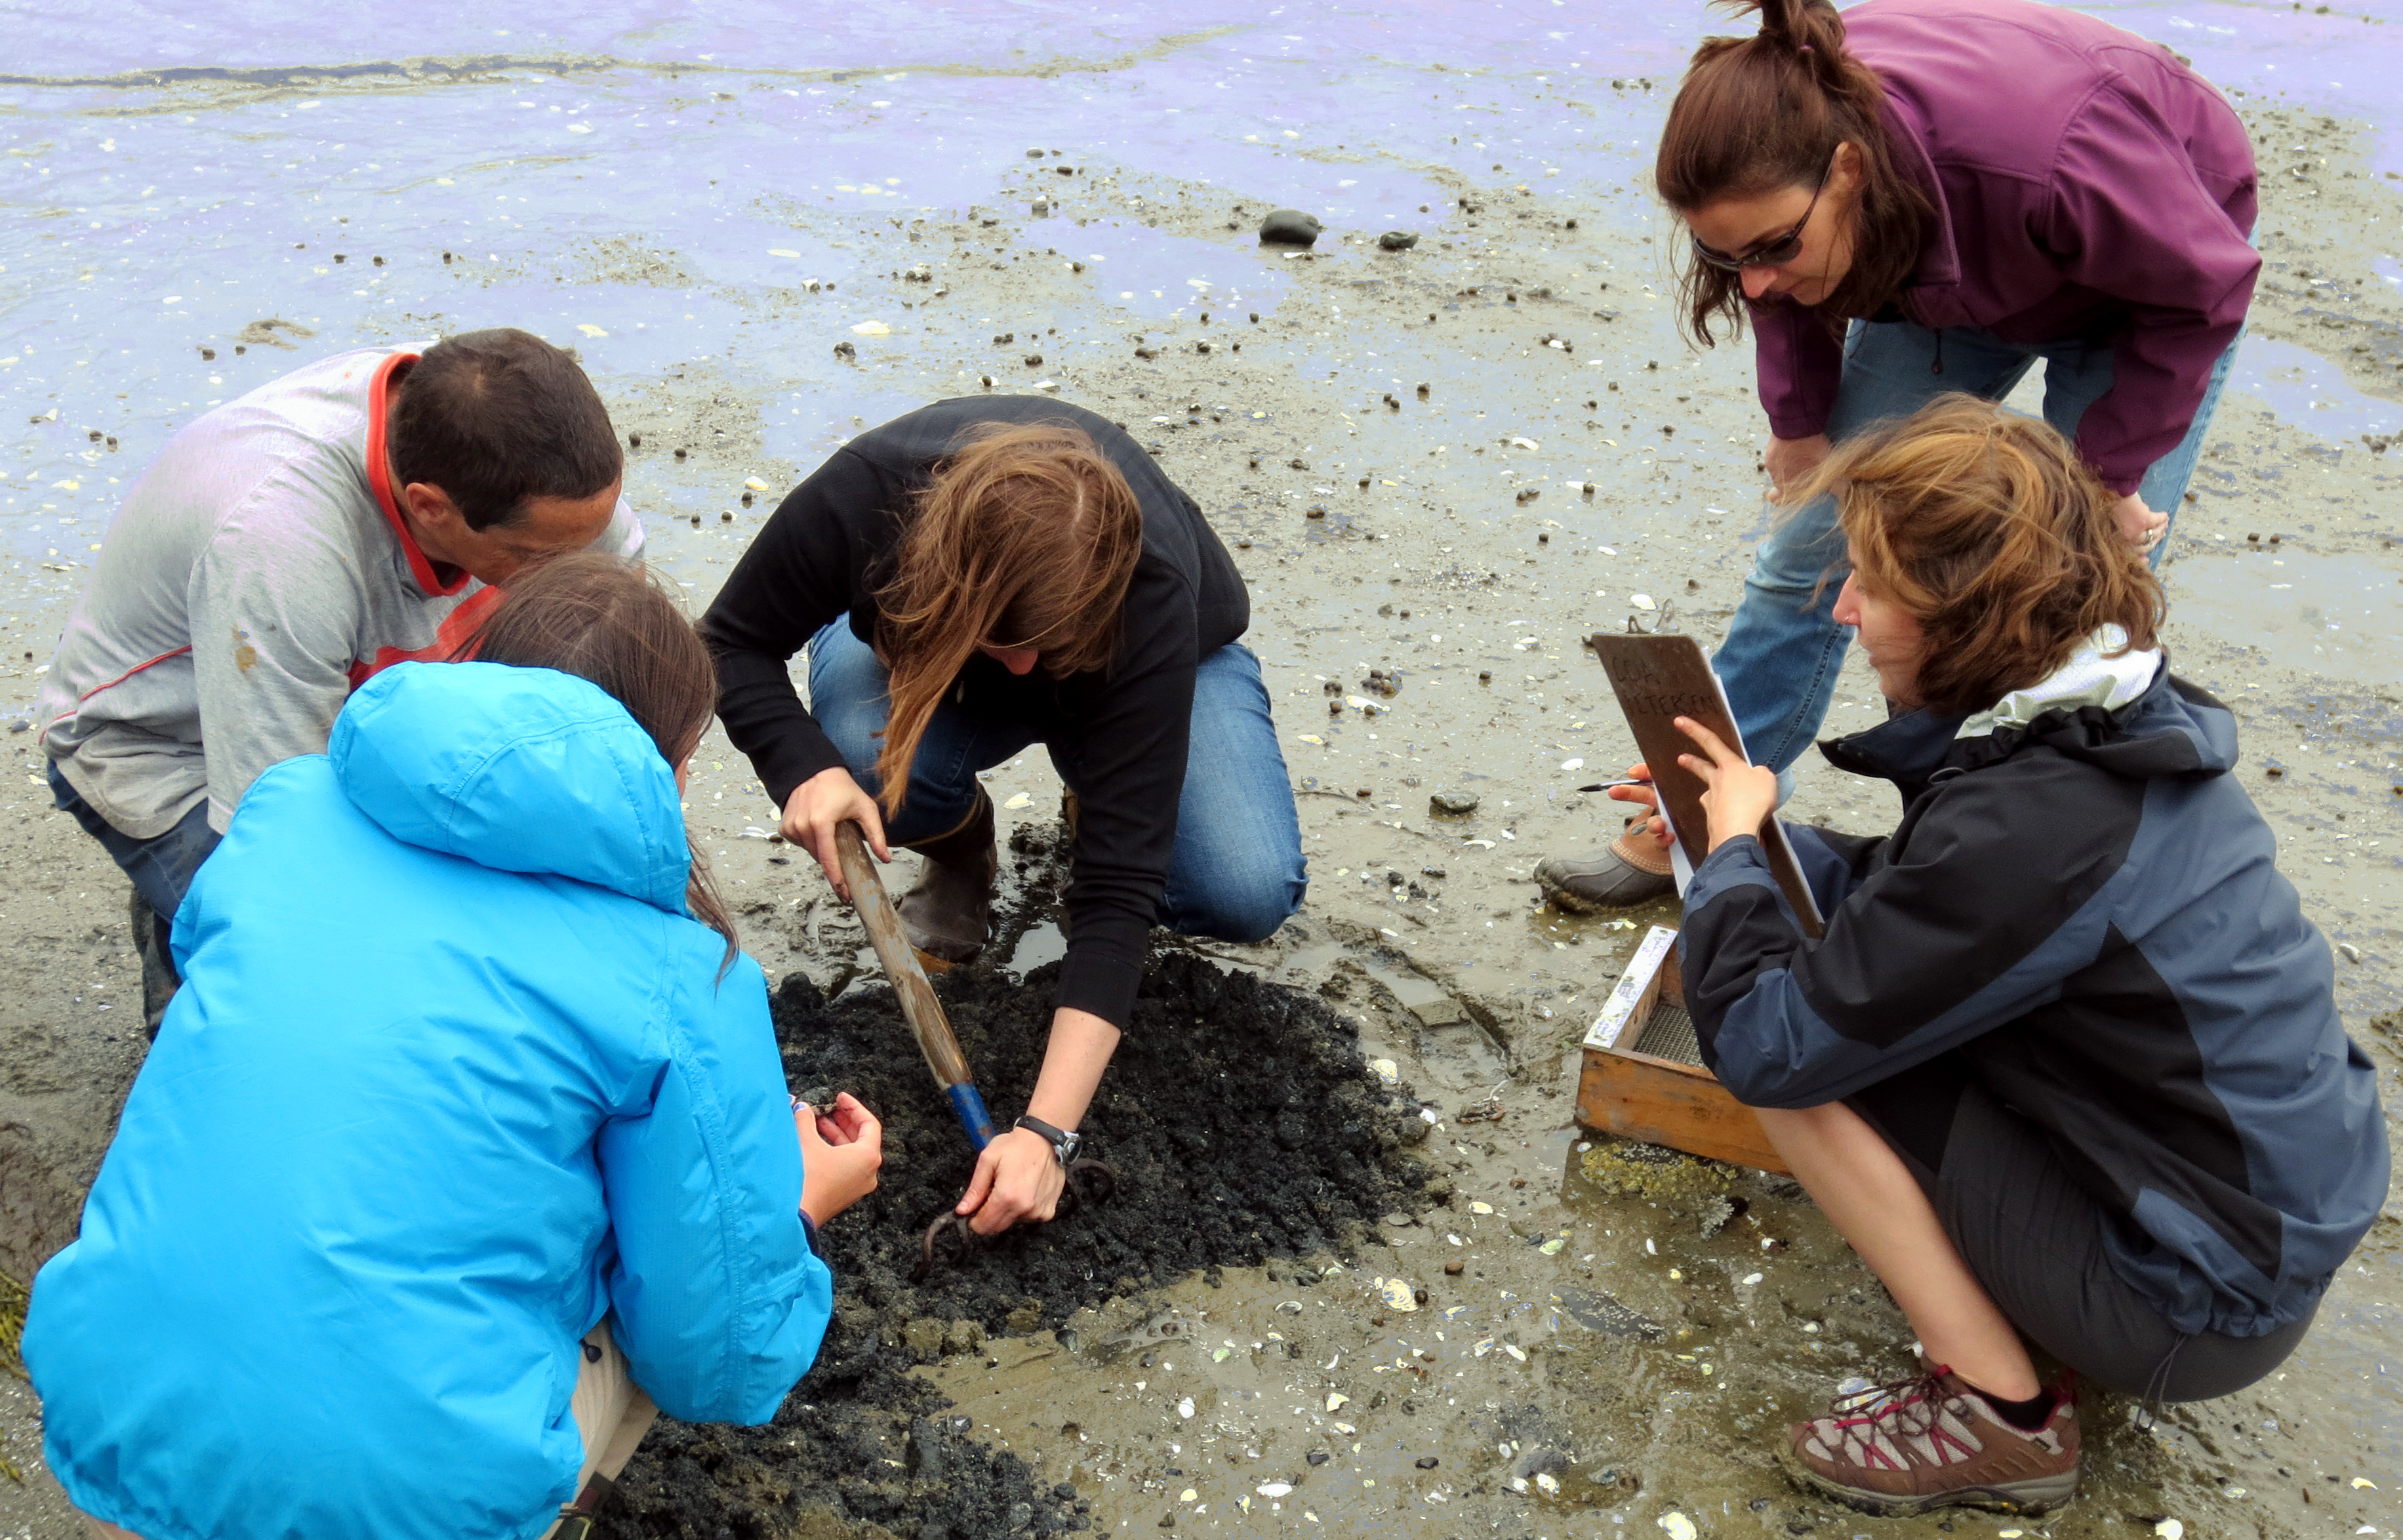 Faculty and students learn about shellfish harvesting practices from a member of the industry as part of a research project.